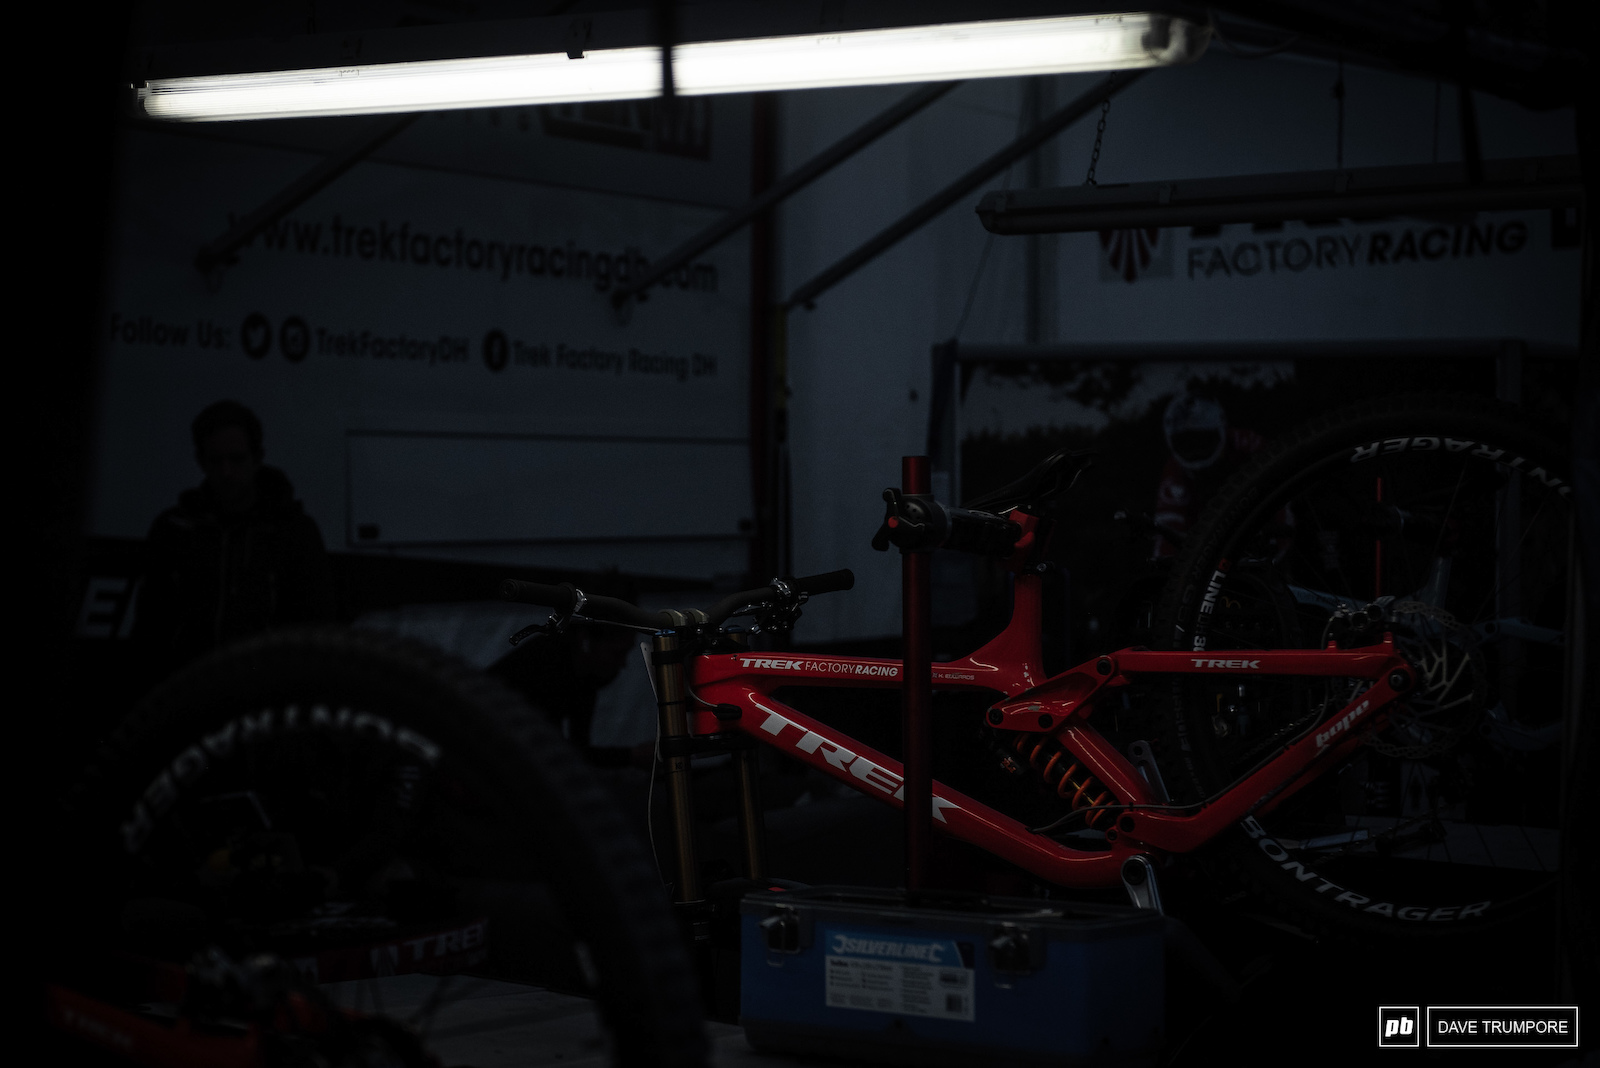 Final details double checked as bikes are prepped in the pre-dawn hours.